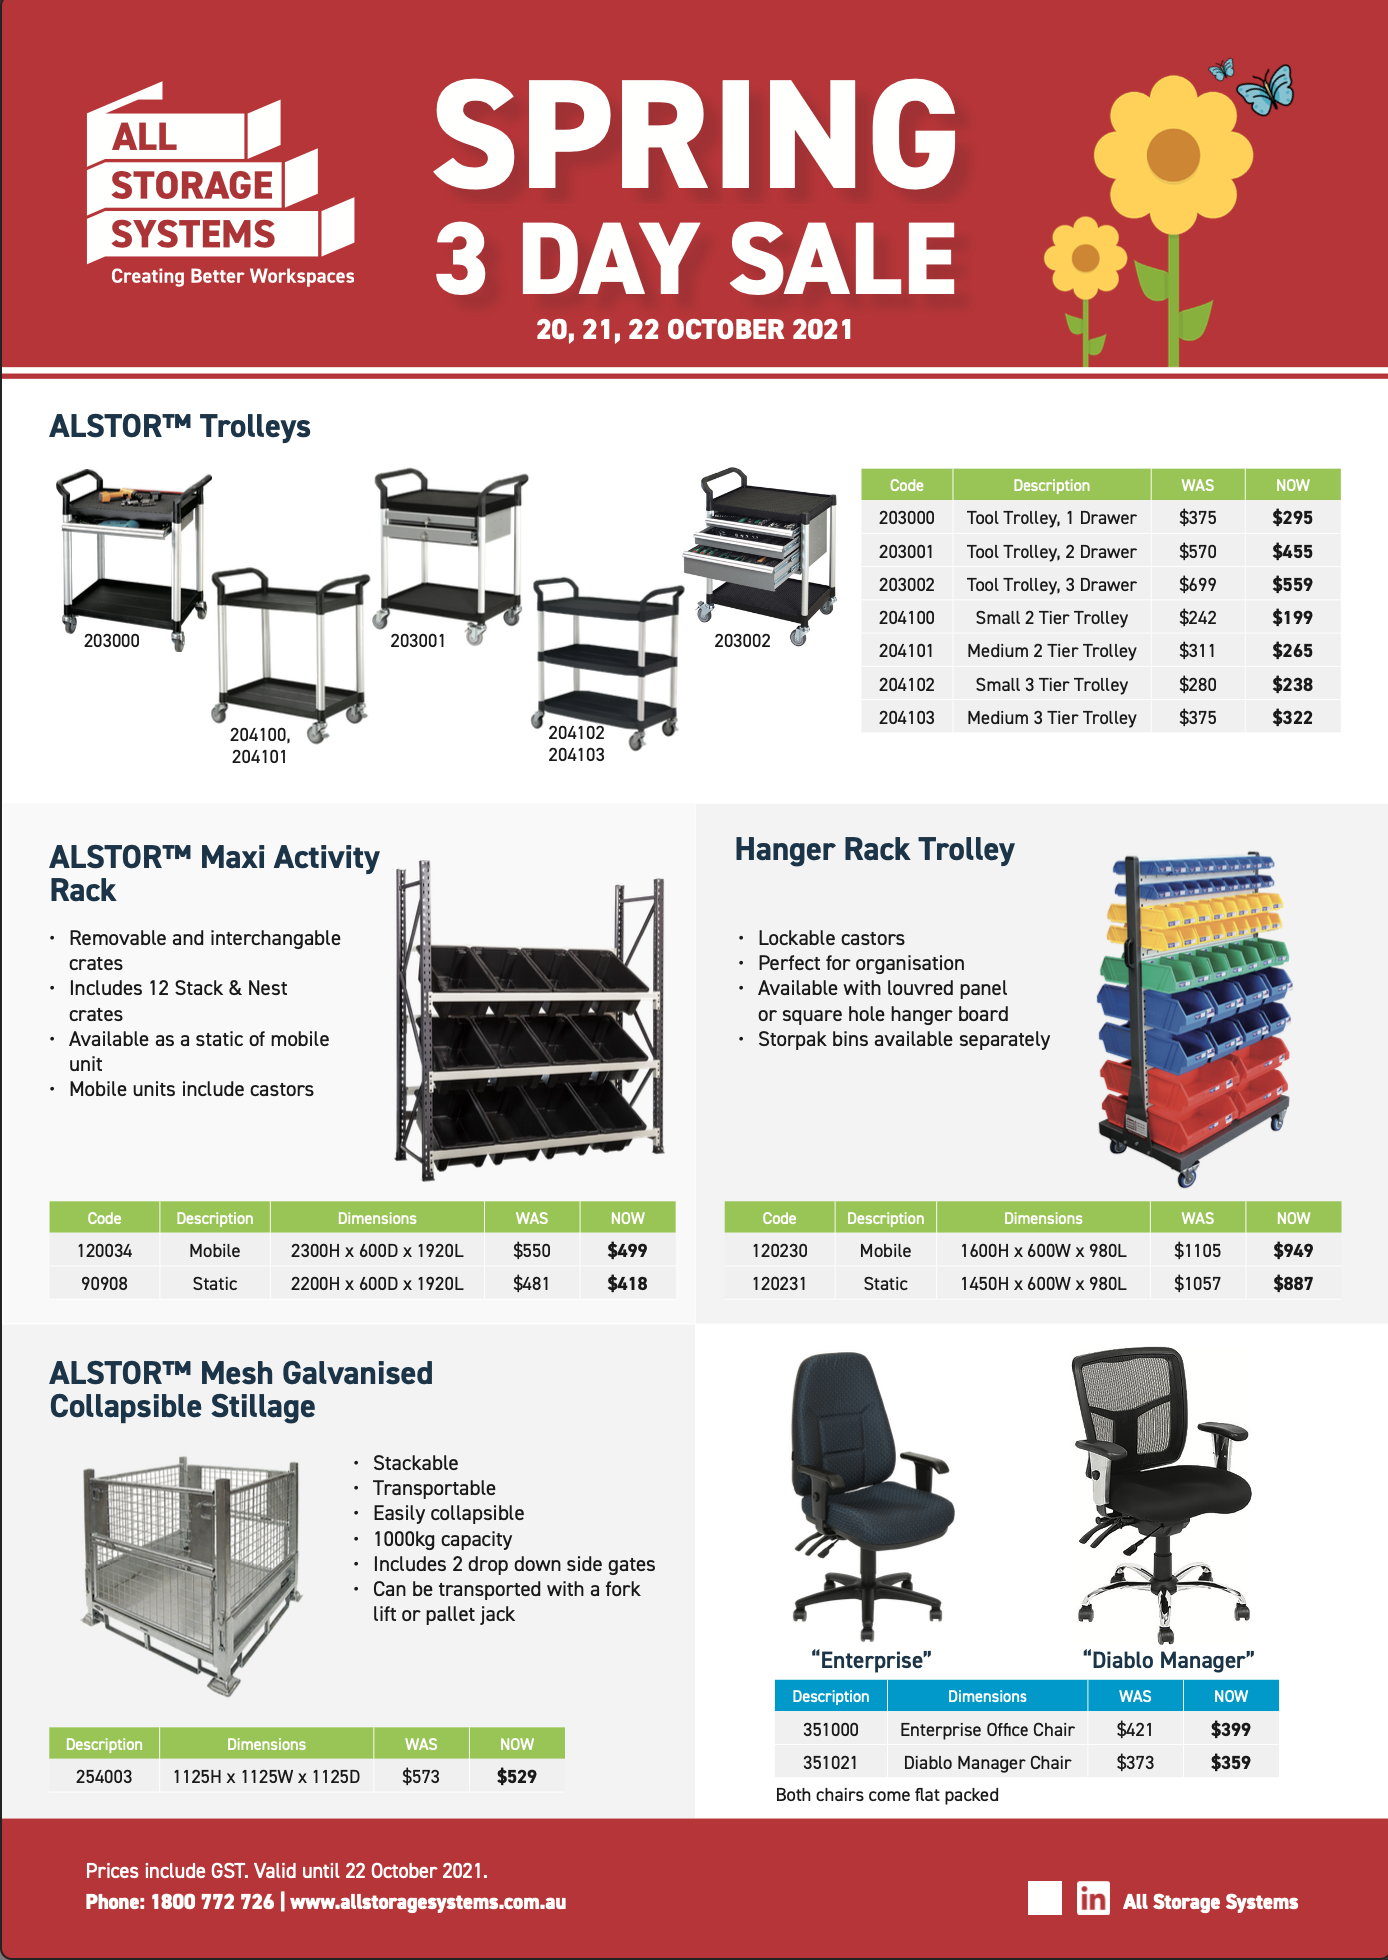 All Storage Systems_3 Day Sale Spring 2021_thumb